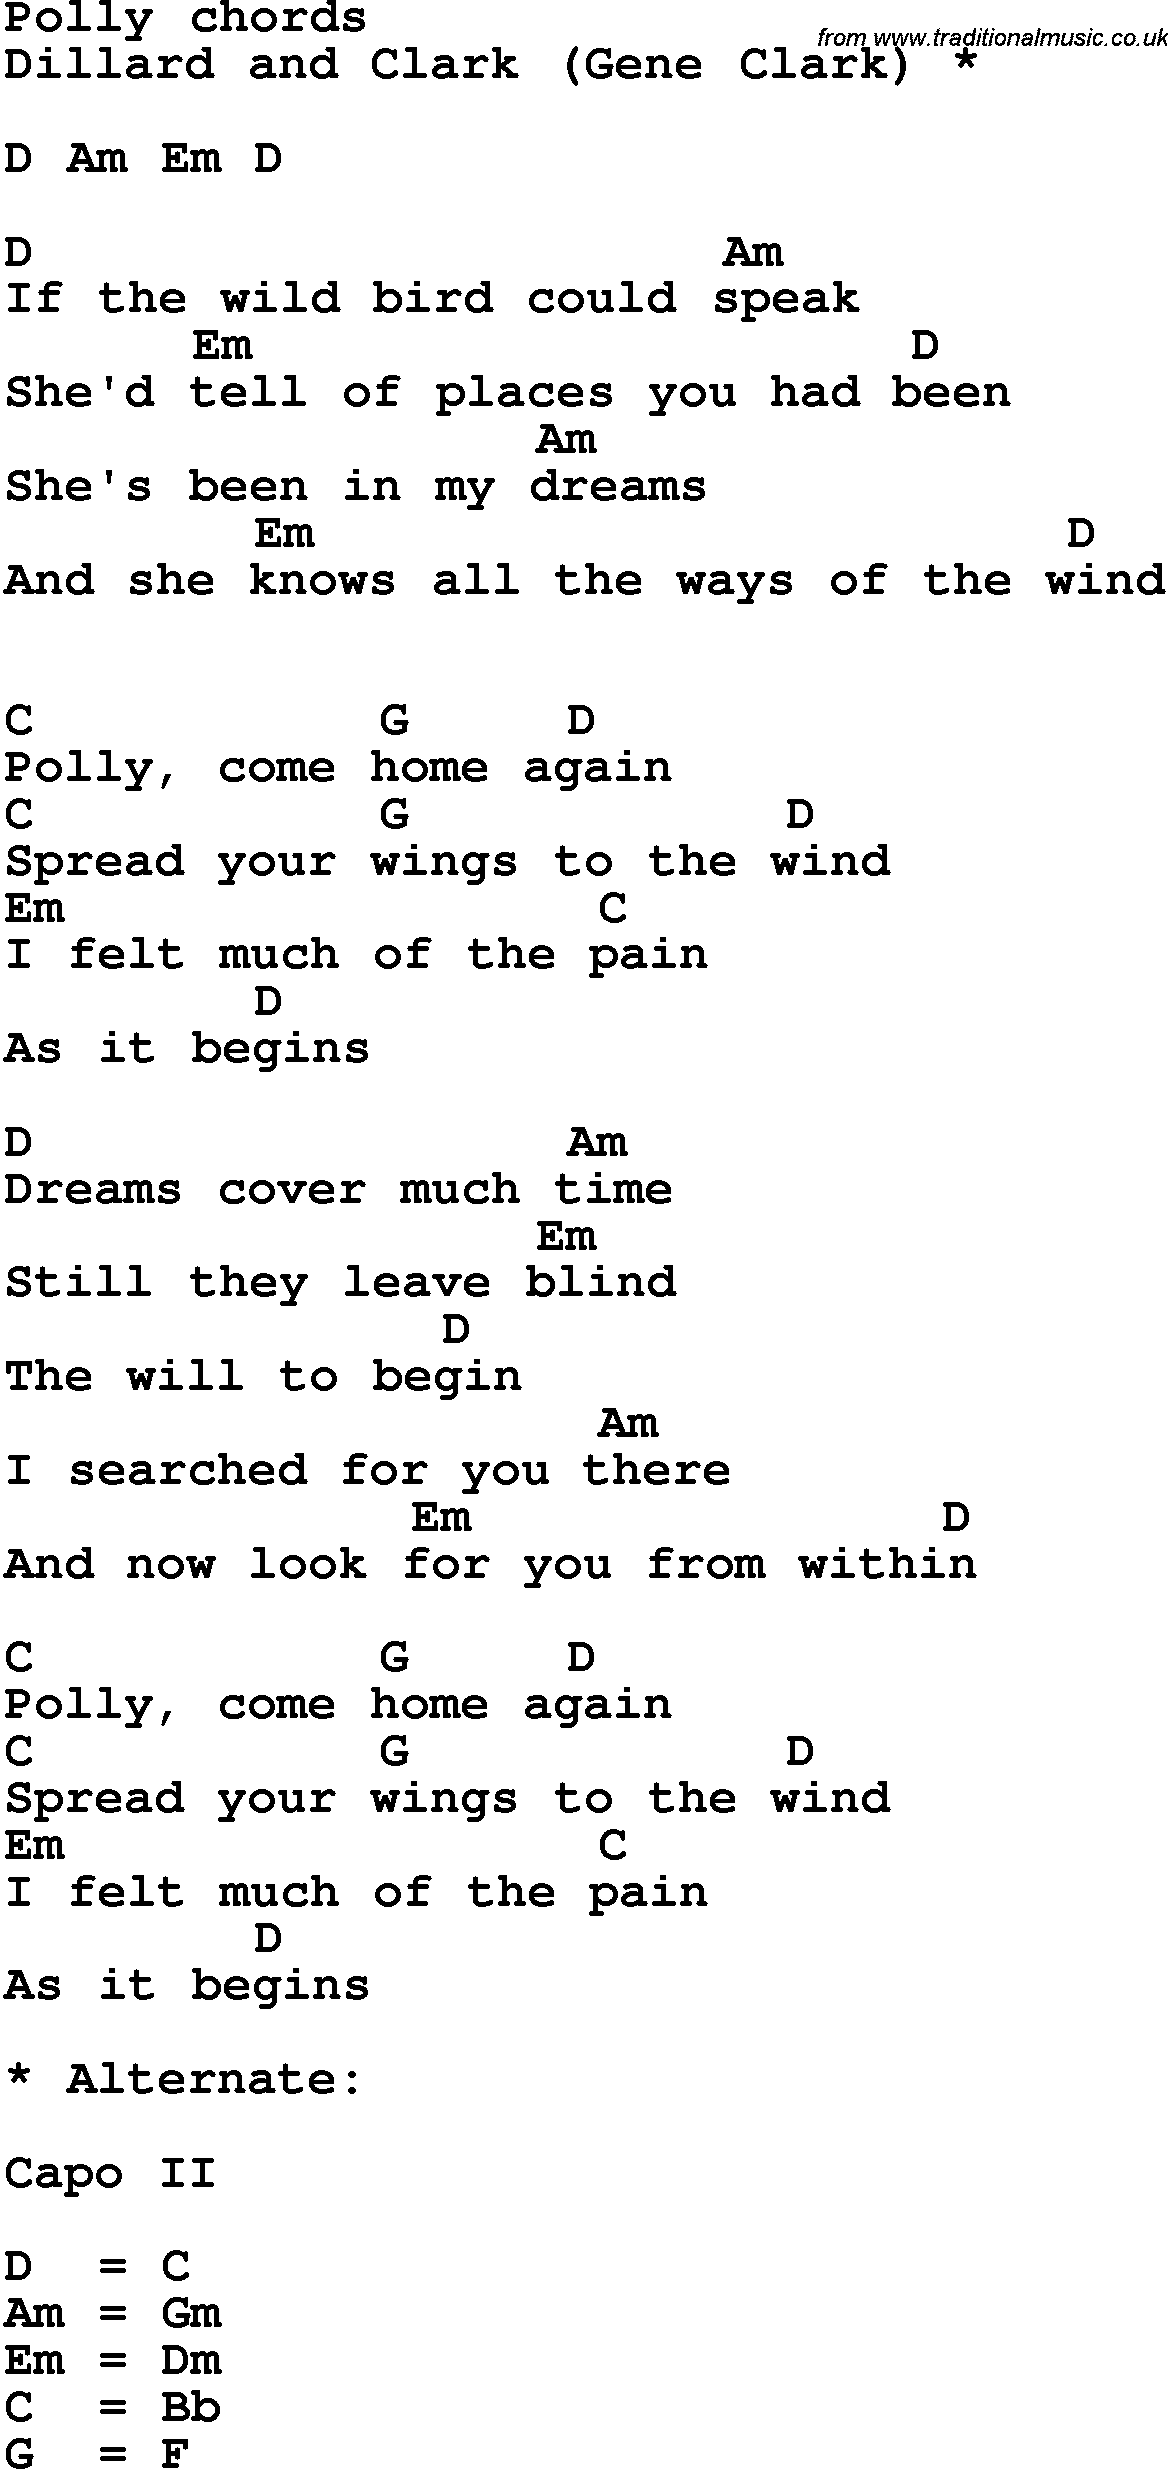 Song lyrics with guitar chords for polly dillard and clark song lyrics with guitar chords for polly dillard and clark hexwebz Images